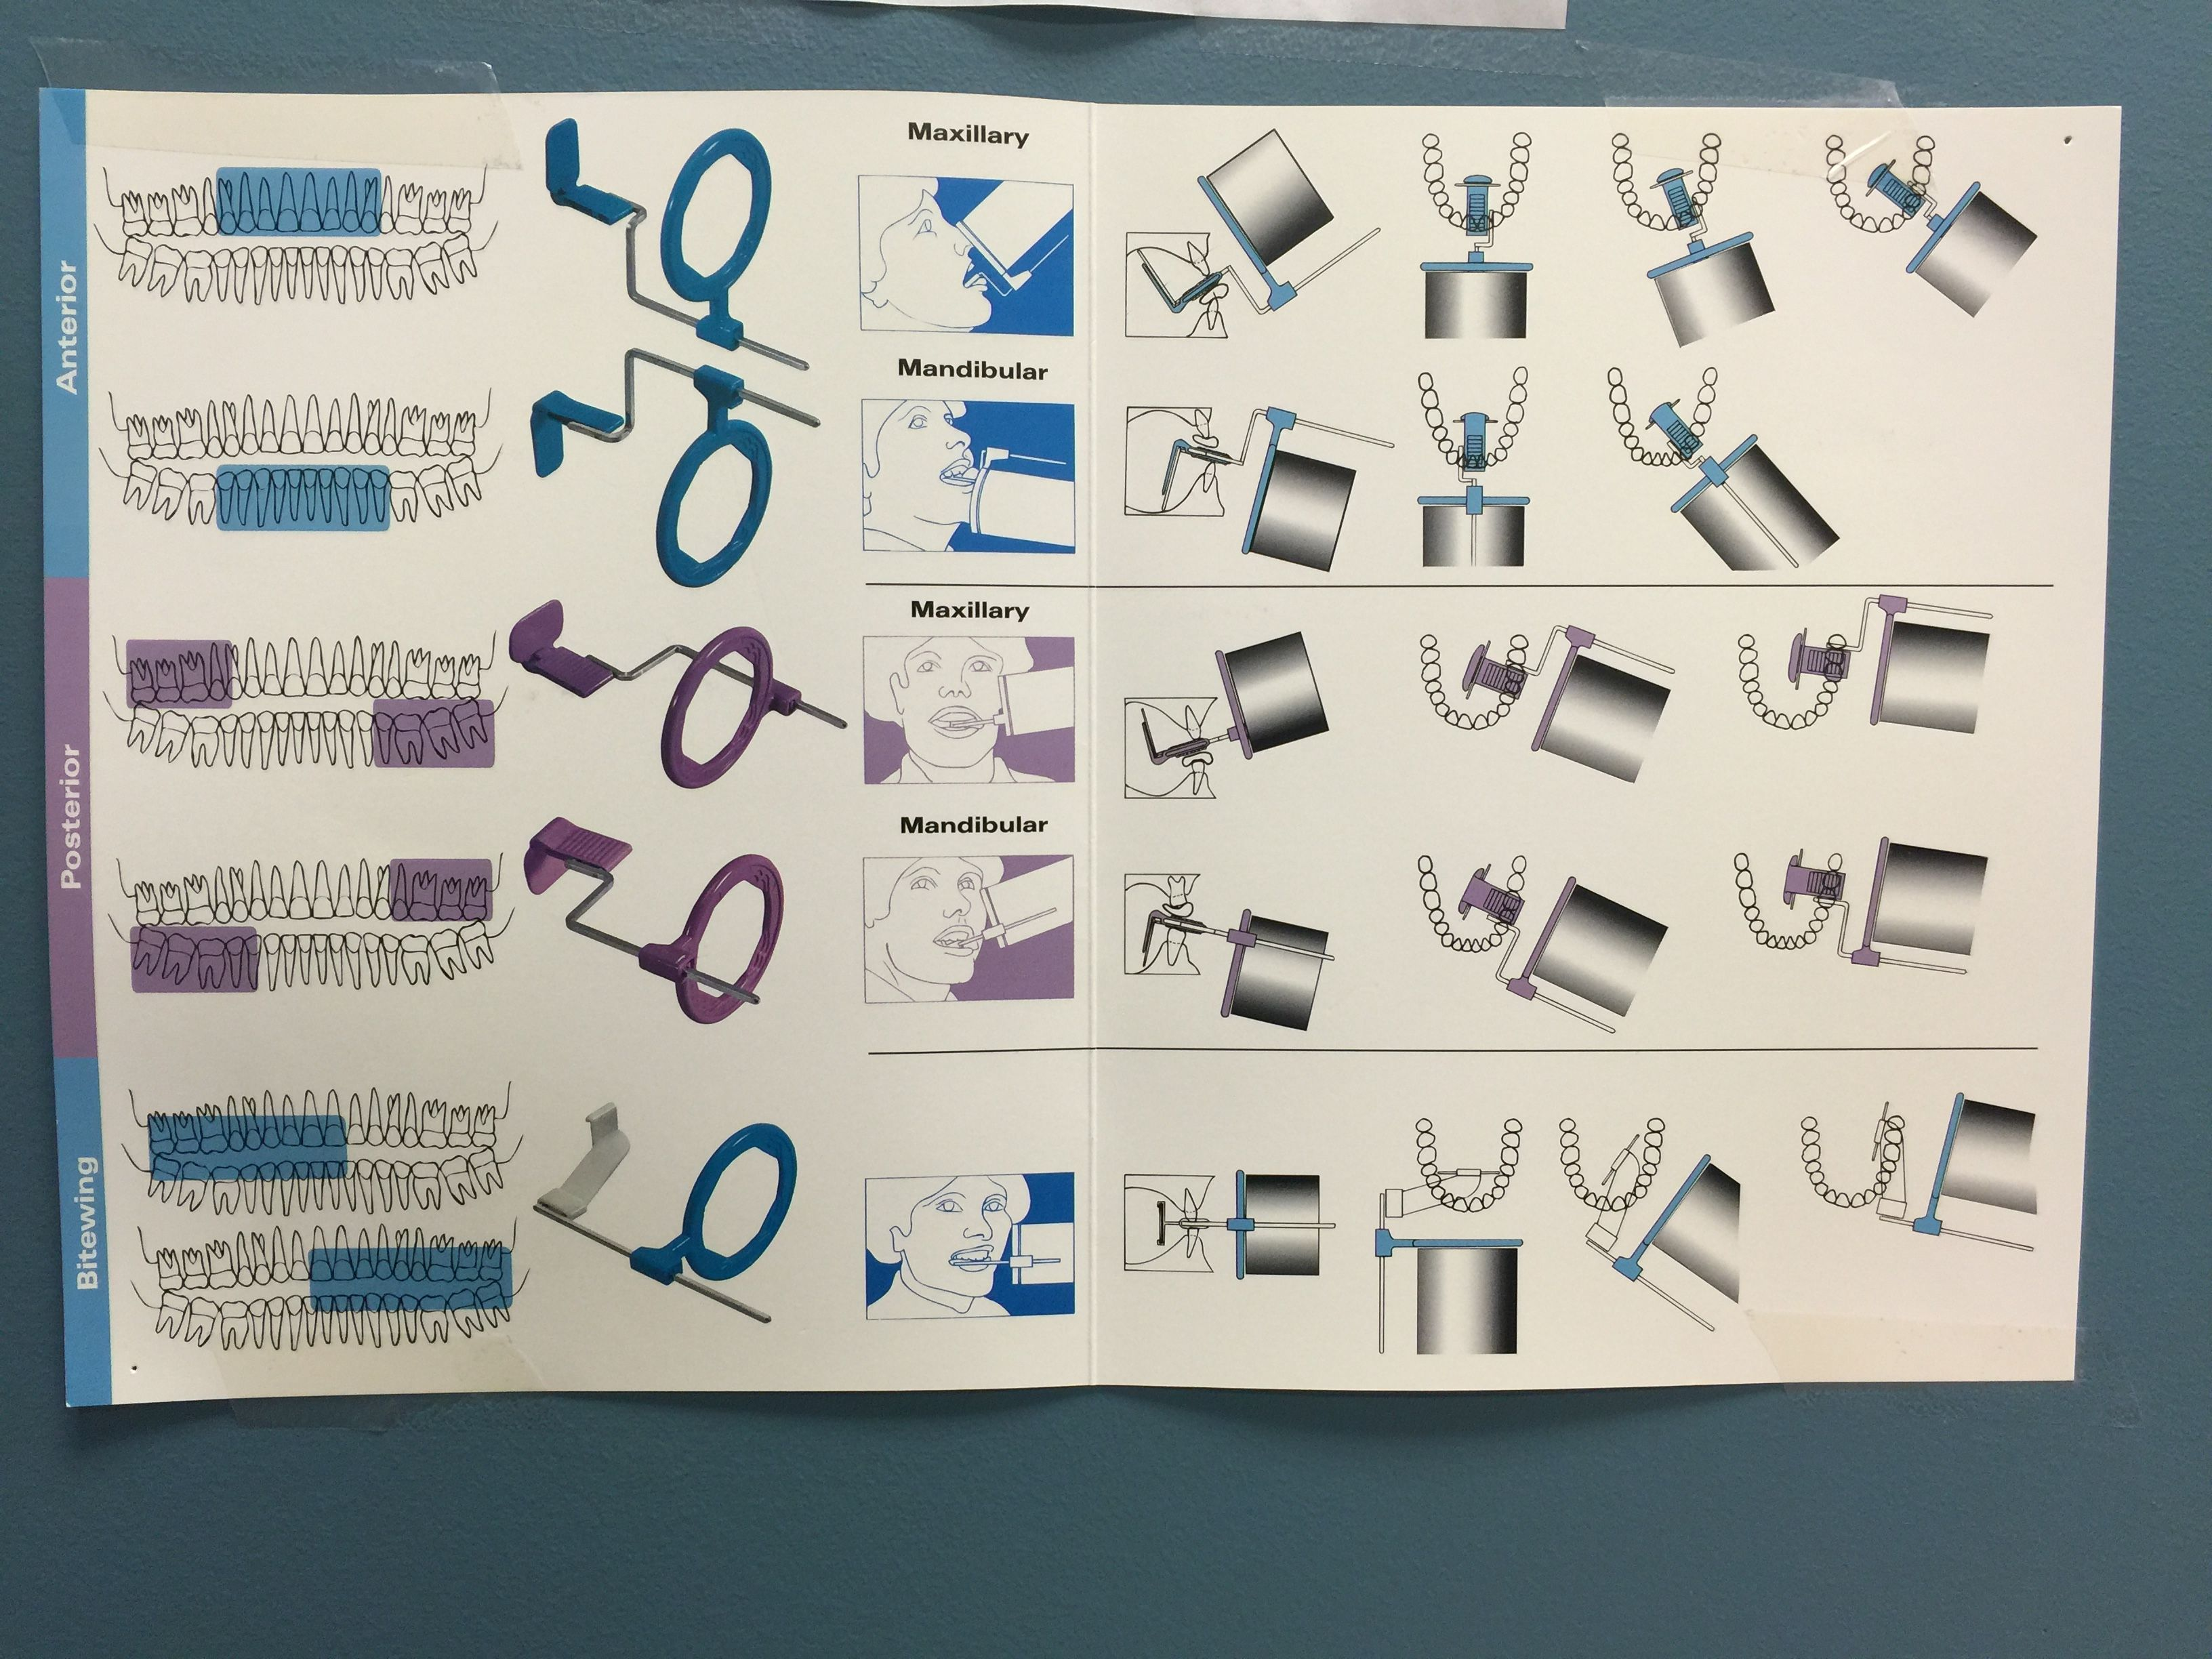 For the perfect x-ray, choose XCP method! | Pinters | Pinterest ...